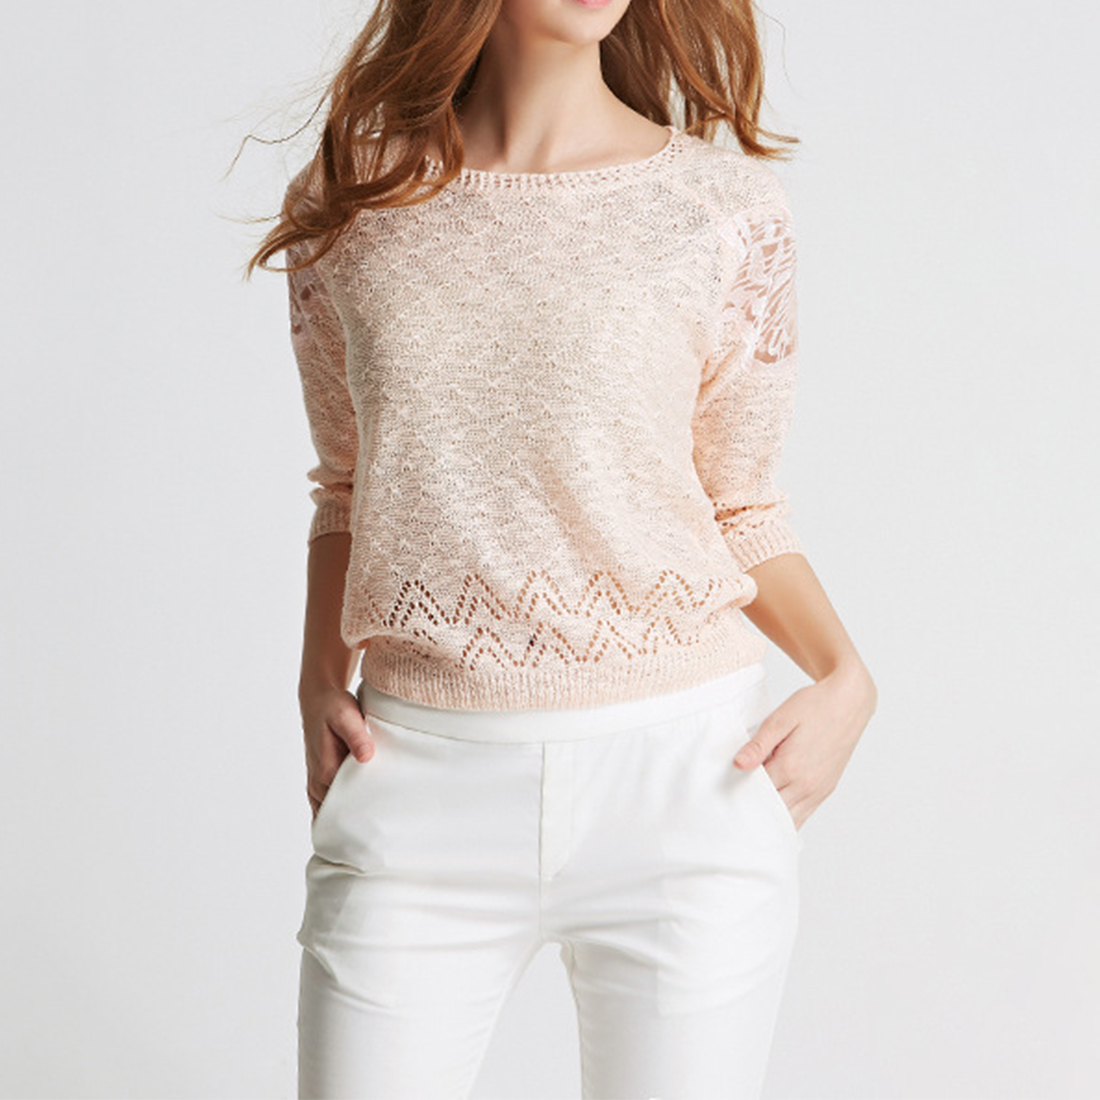 2018 Spring Women Blouse Shirt Winter Lace Hollow Out Sexy Blusas Peplum pink Tops Lace Blouse Long Sleeve chemise